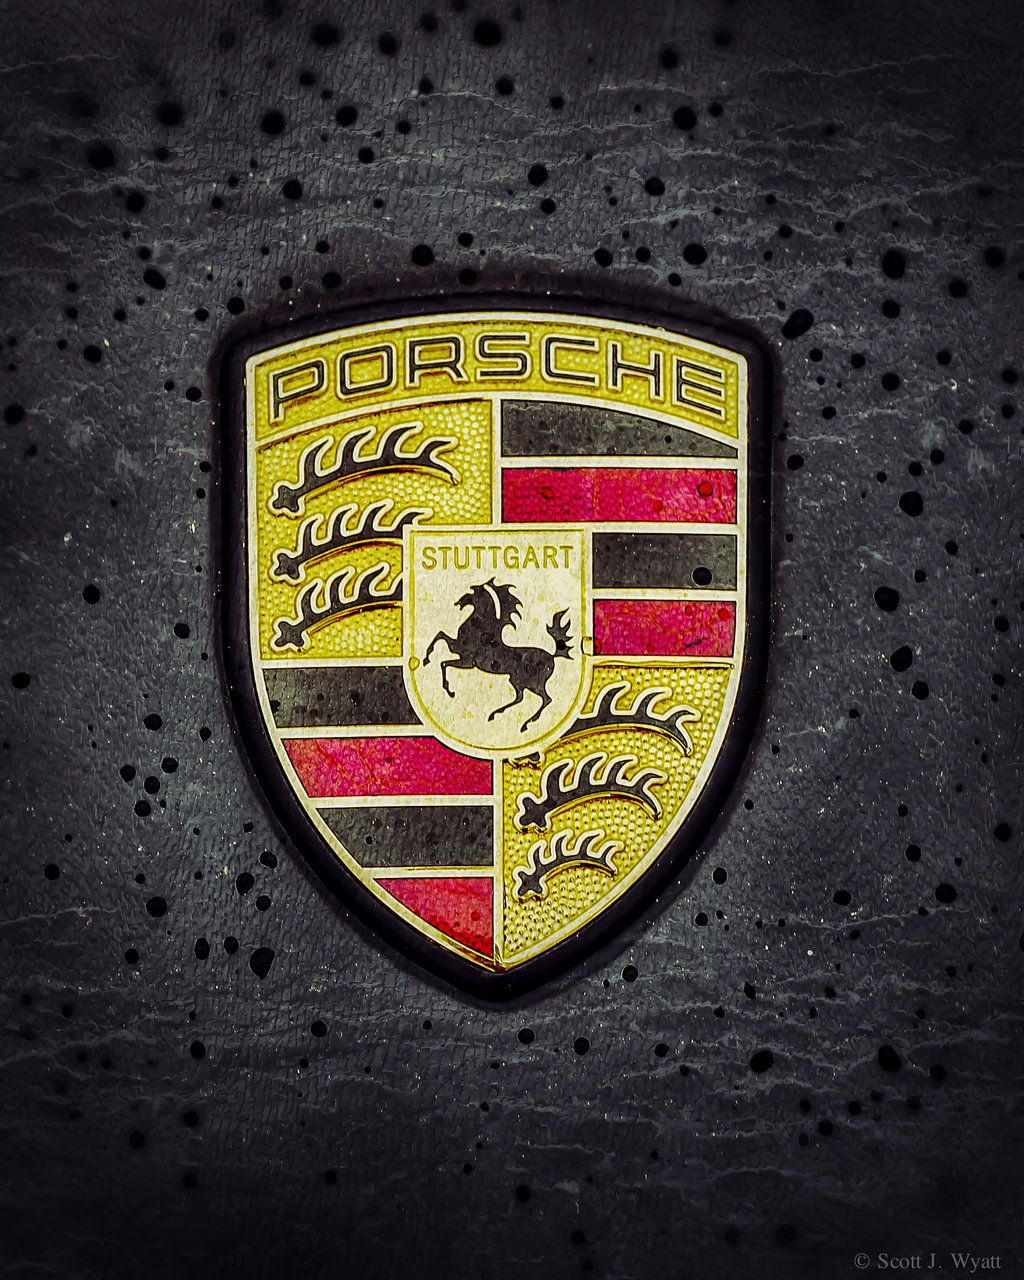 Porsche Logo Wallpapers For Android On Wallpaper 1080p Hd Porsche Logo Vintage Porsche Logos